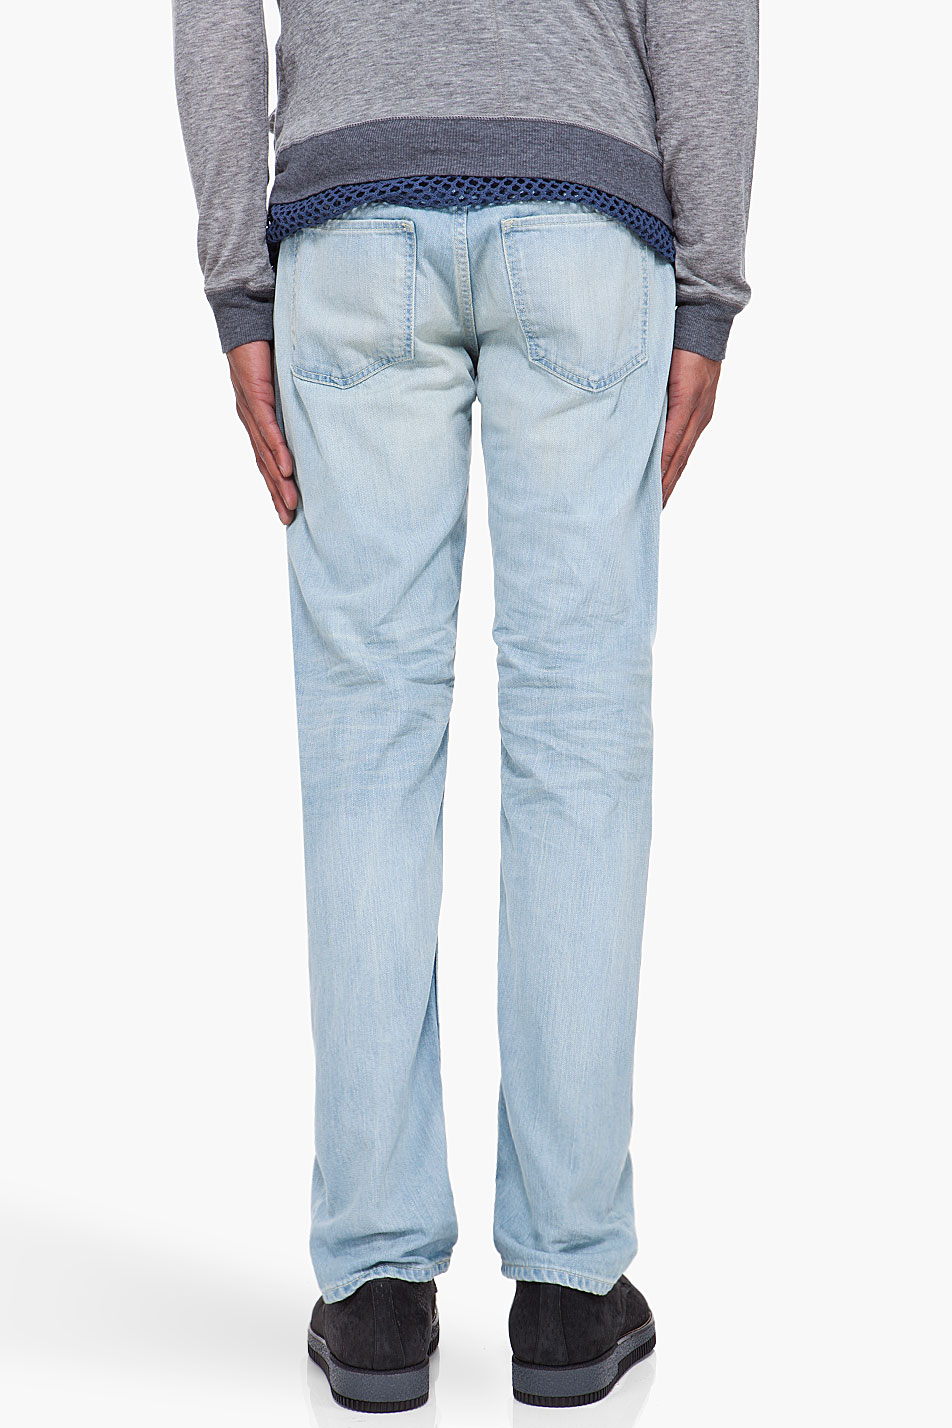 Men's Jeans - Shop Latest collection of Denim jeans for men online from the best brands like Levis jeans, Wrangler jeans, Lee jeans, Flying Machine jeans and more. Get slim fit jeans, skinny jeans, etc. at best prices & sale from Flipkart.